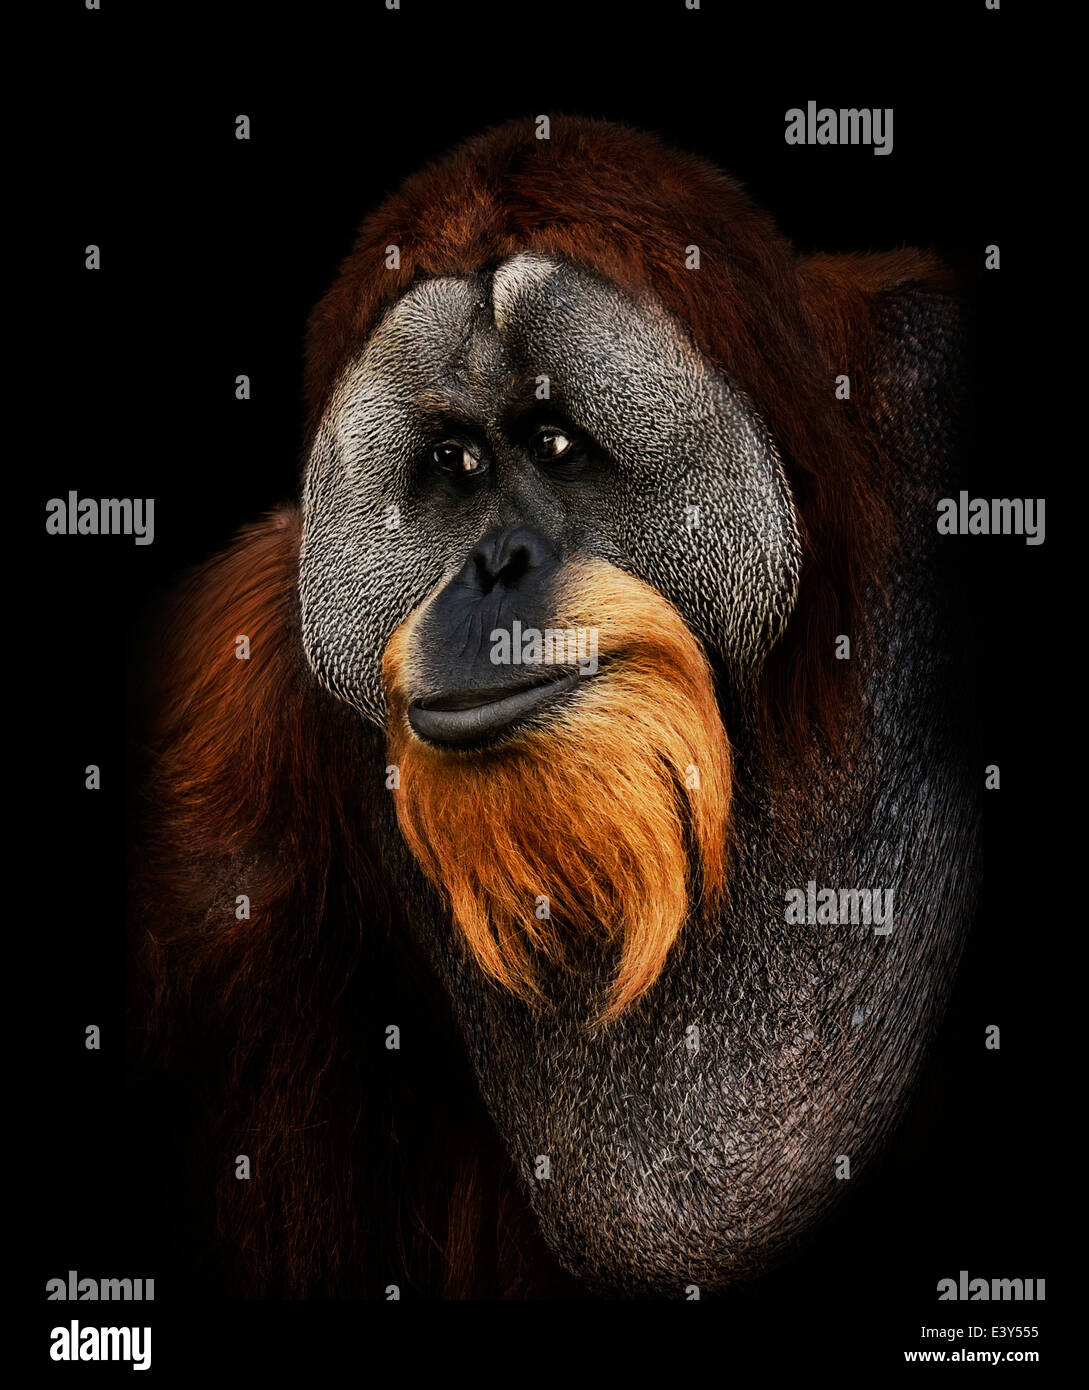 Orangutan Portrait On Black Background - Stock Image